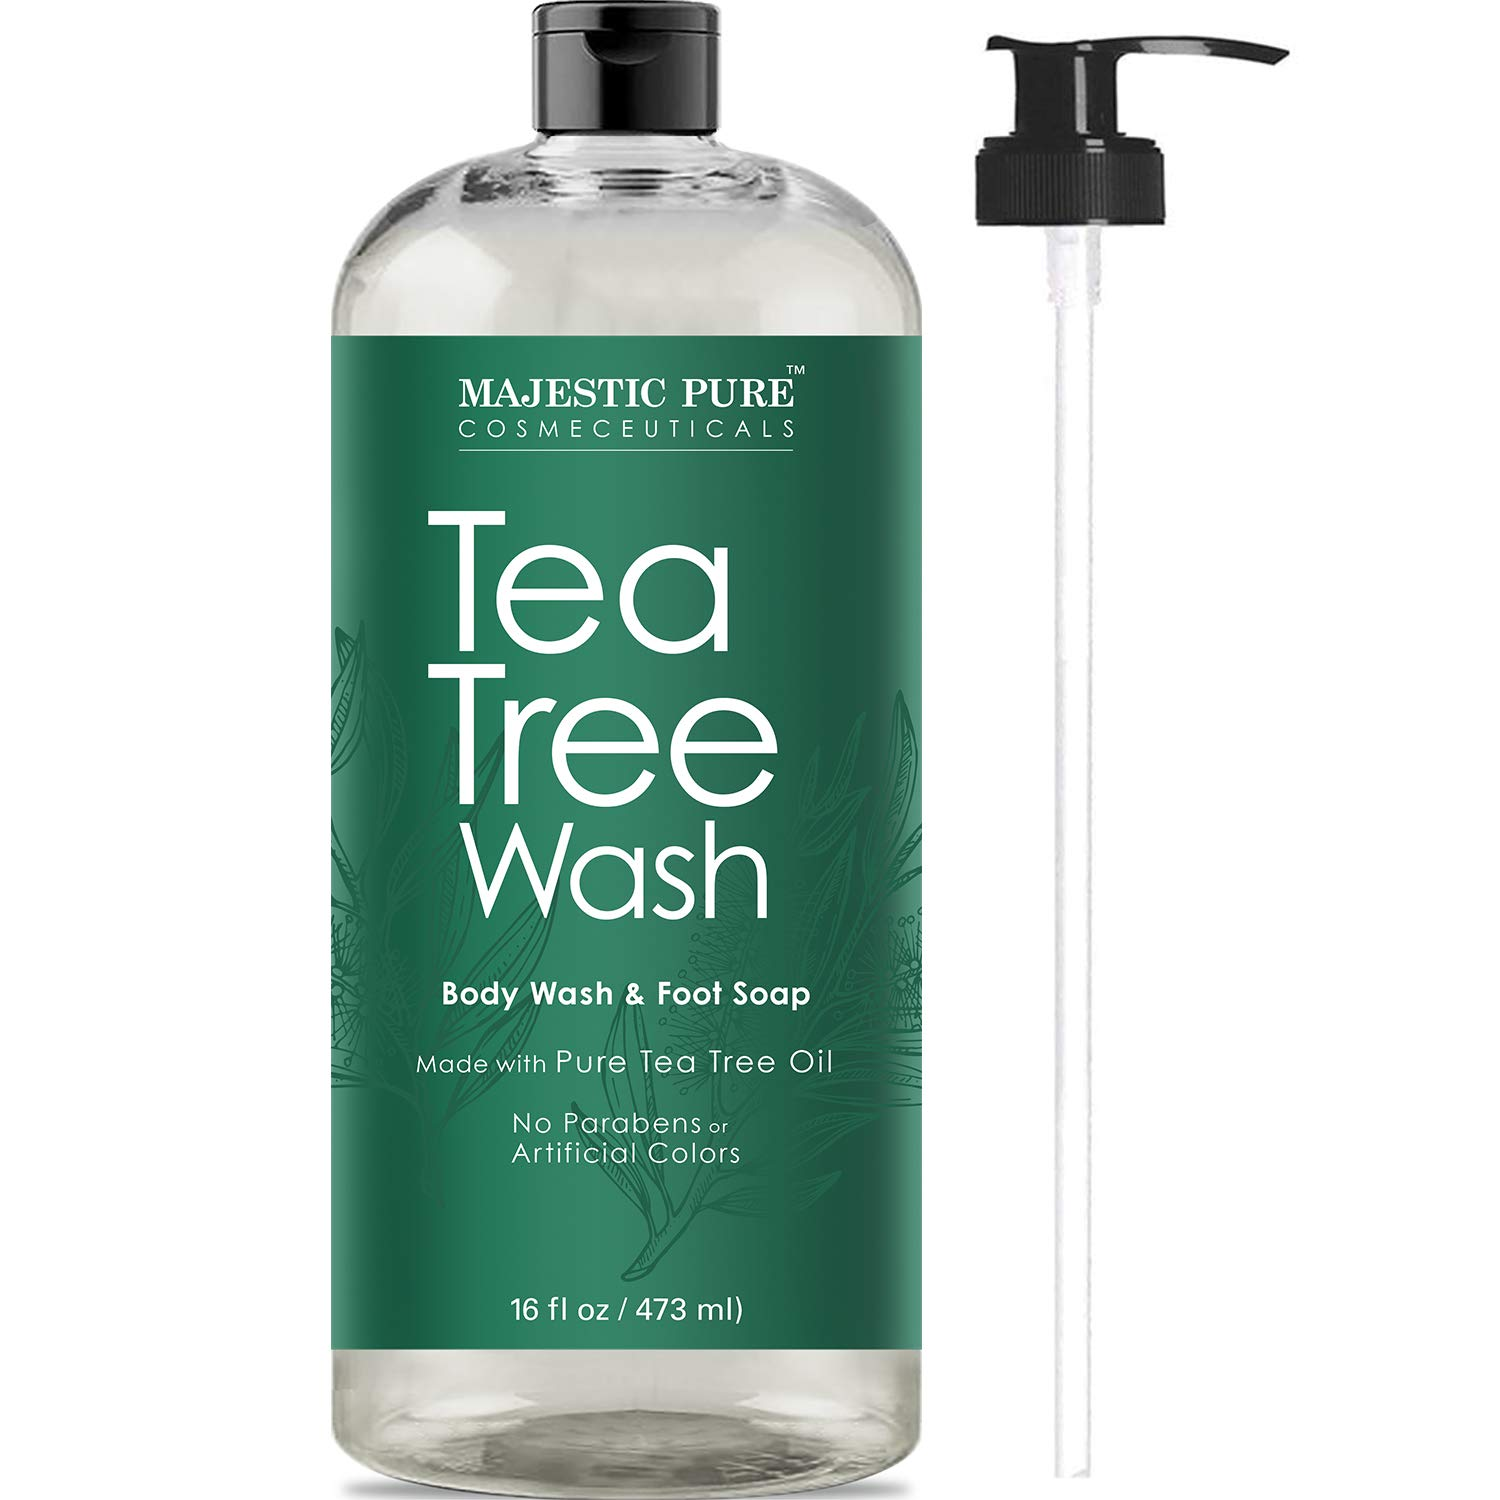 Tea Tree Body Wash, Helps Nail Fungus, Athletes Foot, Ringworms, Jock Itch, Acne, Eczema & Body Odor, Soothes Itching & Promotes Healthy Feet, Skin and Nails, Naturally Scented, 16 fl. oz. by Majestic Pure